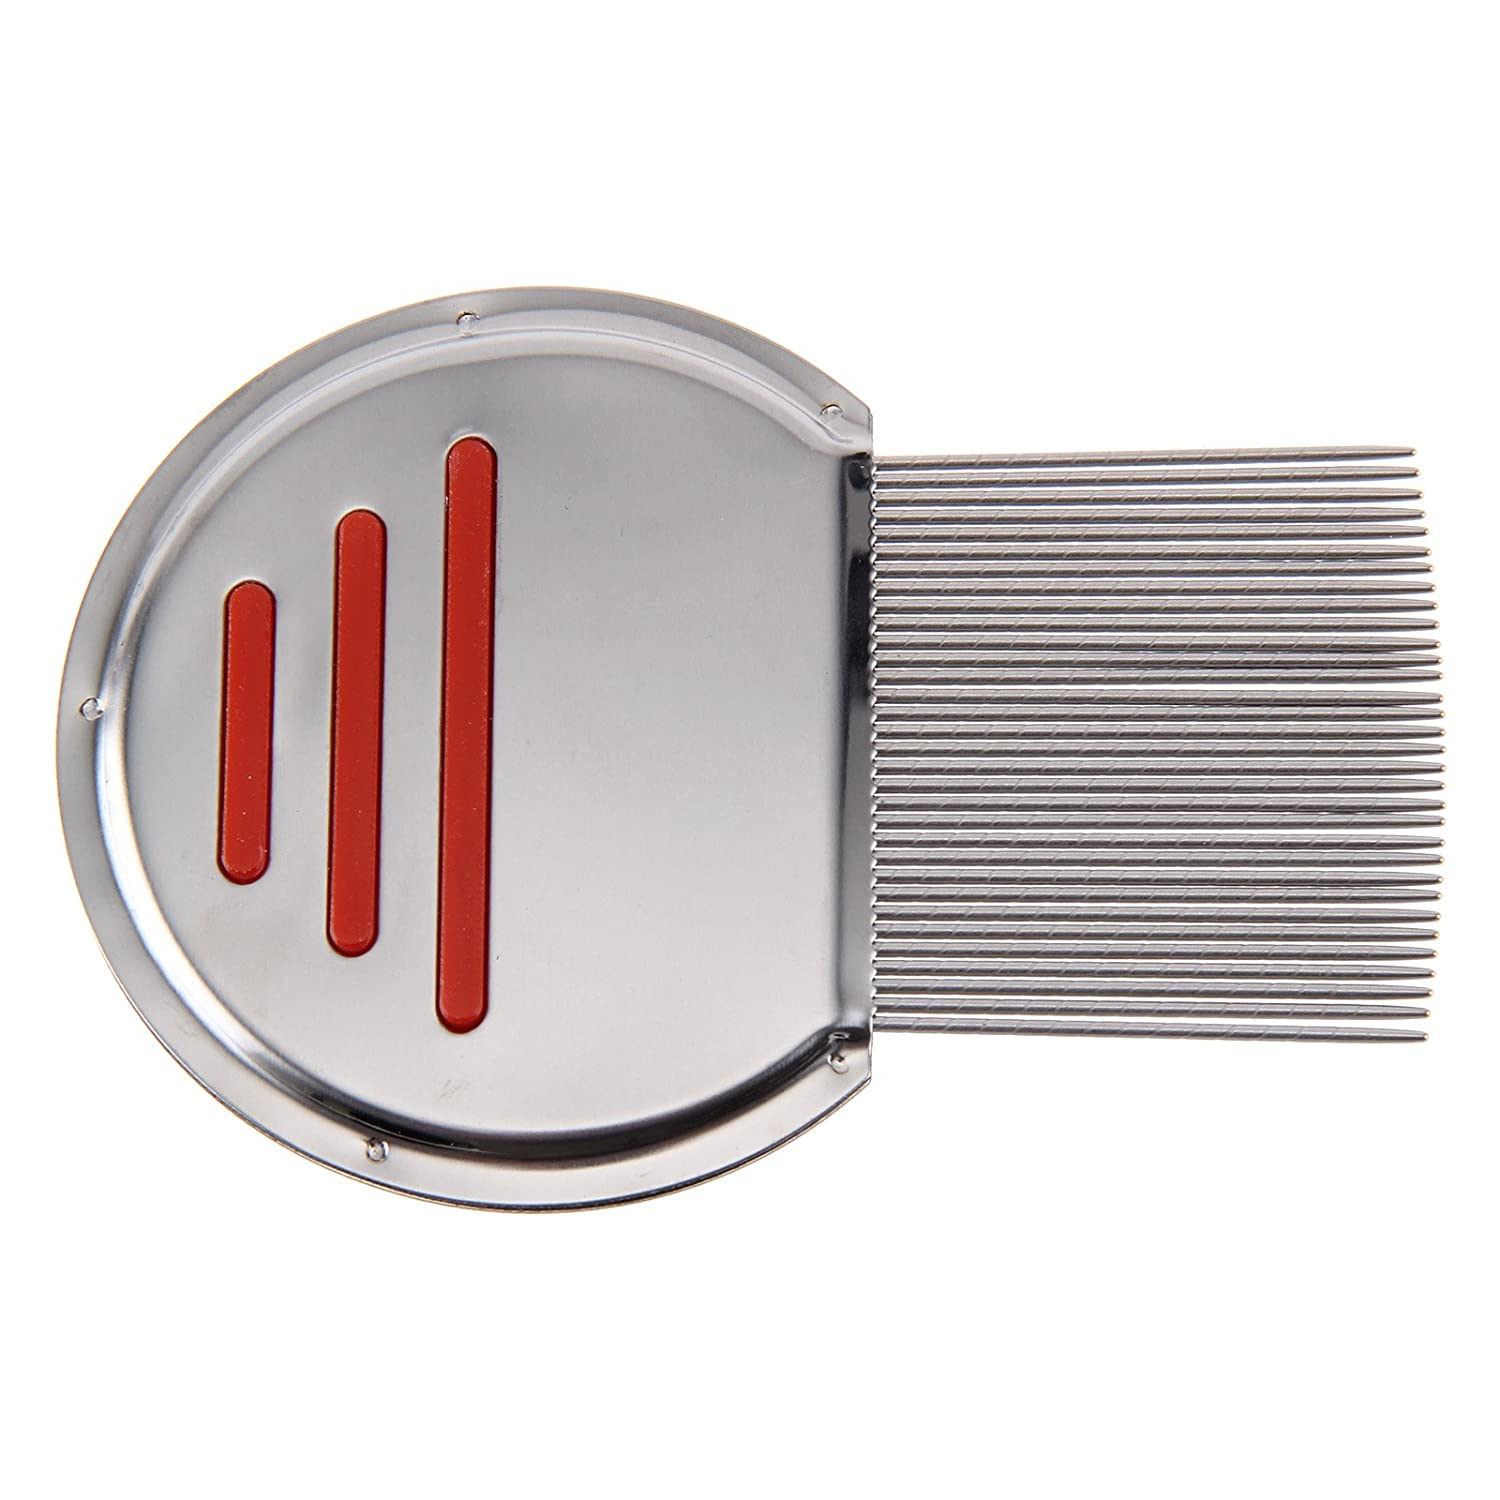 AllRight Lice Nit Get Down To Nitty Gritty Stainless Steel Removal Comb Metal Teeth Red oem